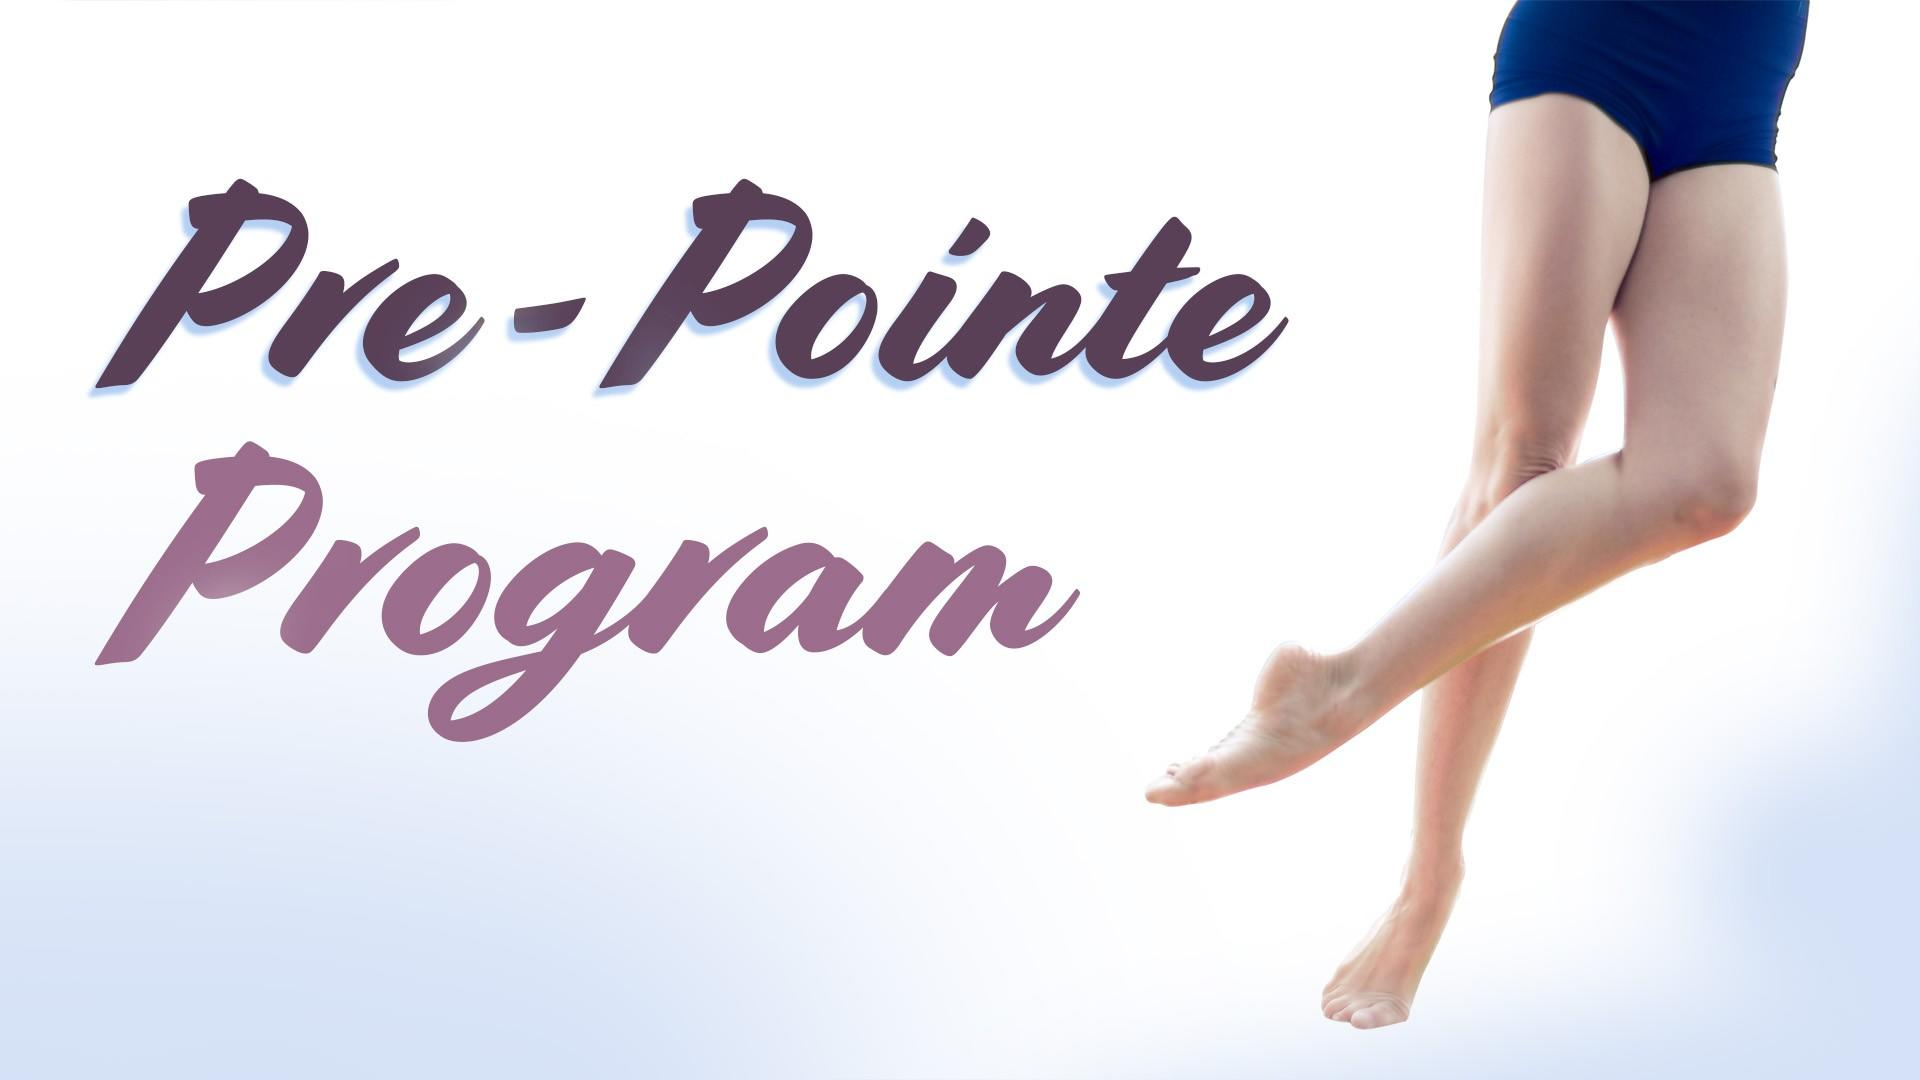 Pre-Pointe Program